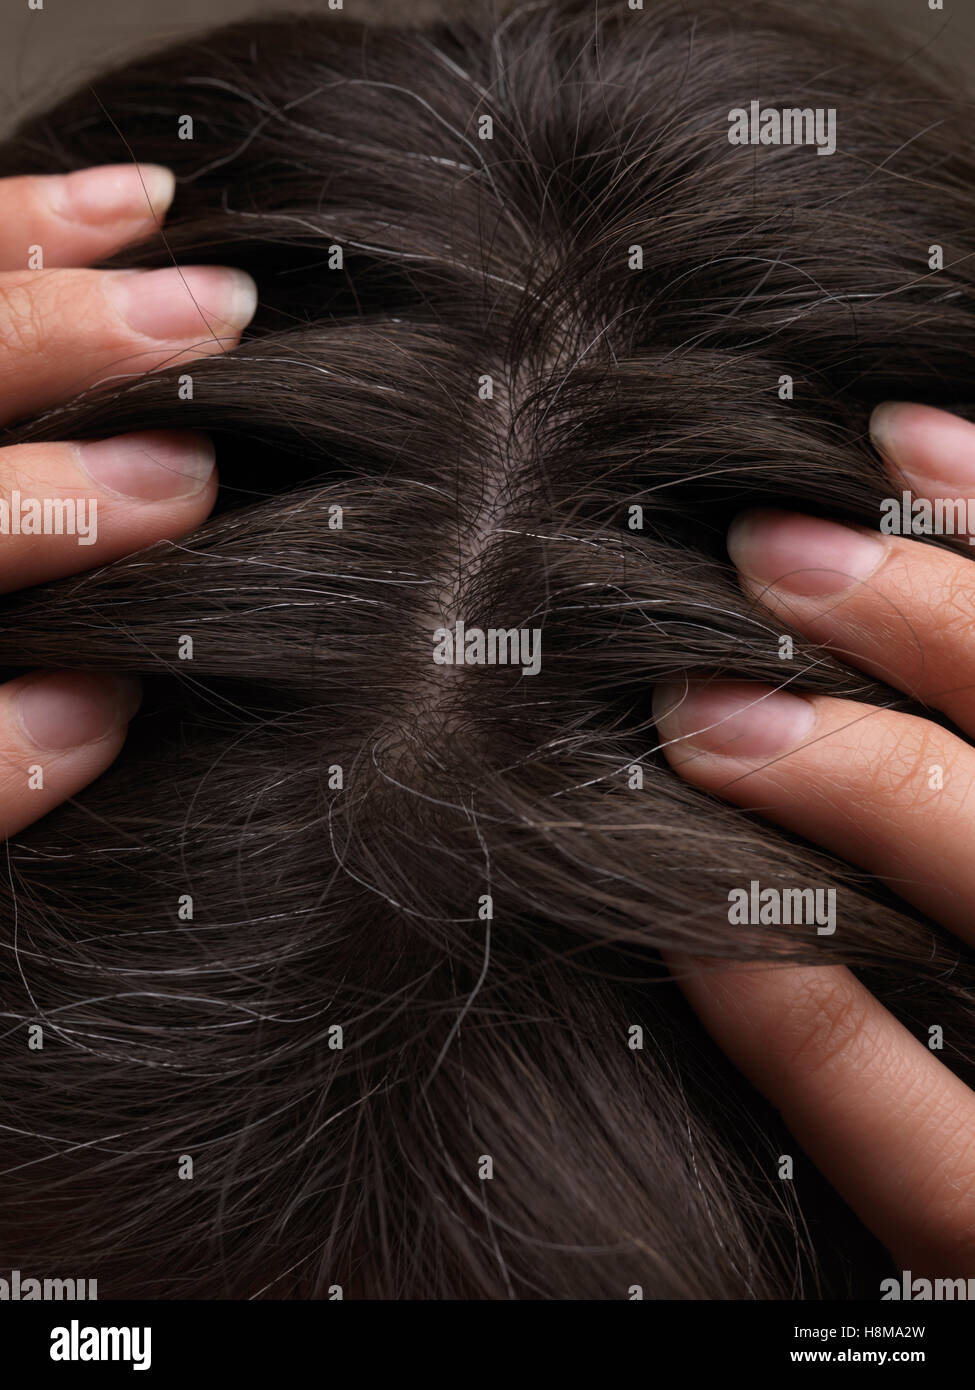 Grey hairs on a woman's head - Stock Image